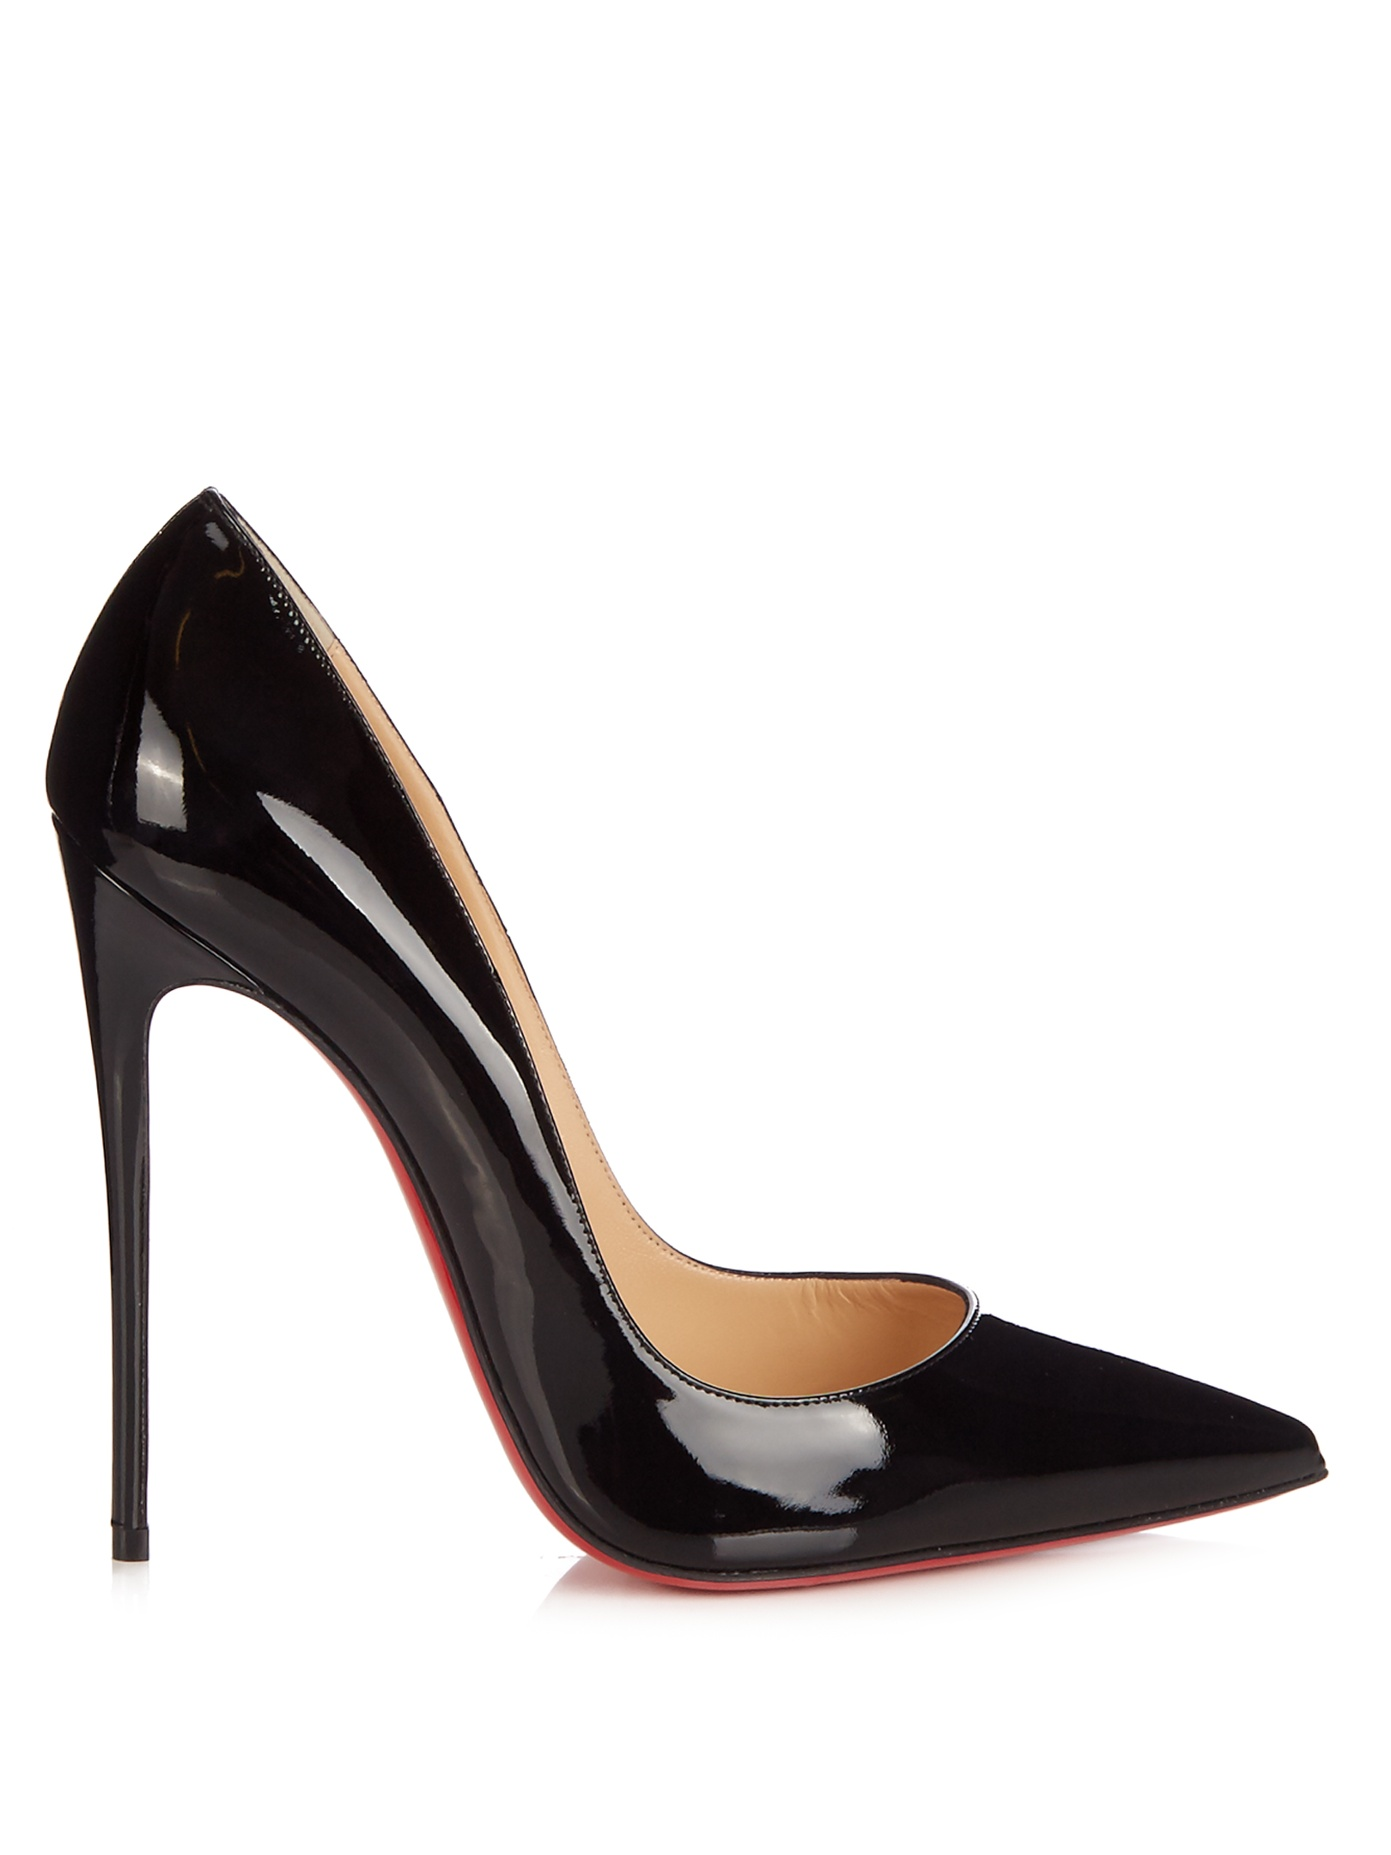 4767cf1bfb0a Christian Louboutin So Kate in Black - Meghan s Mirror